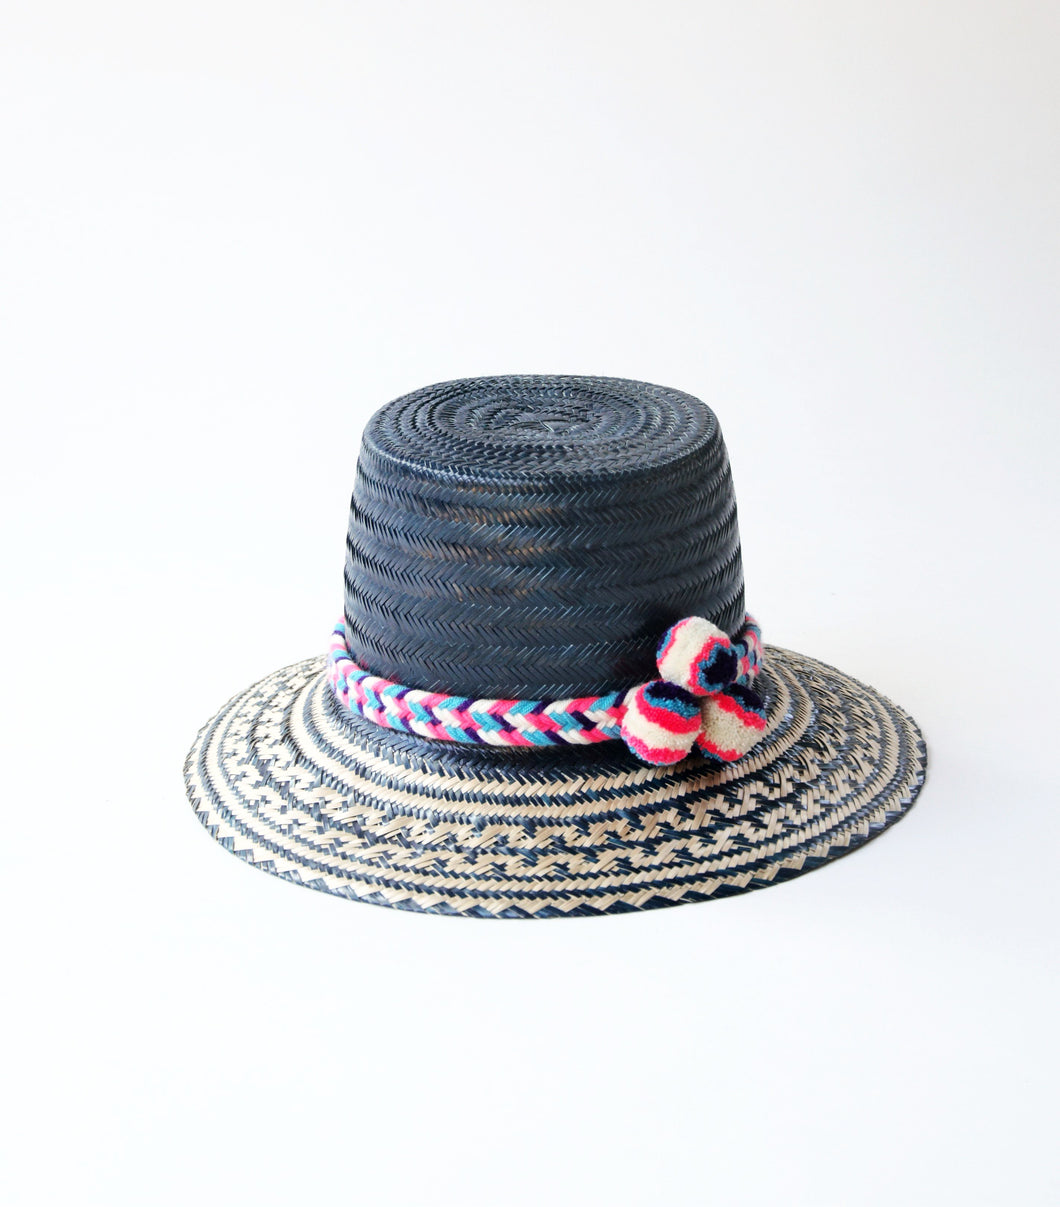 Azul Straw Hat with pompoms - In Stores only - MãeAzul